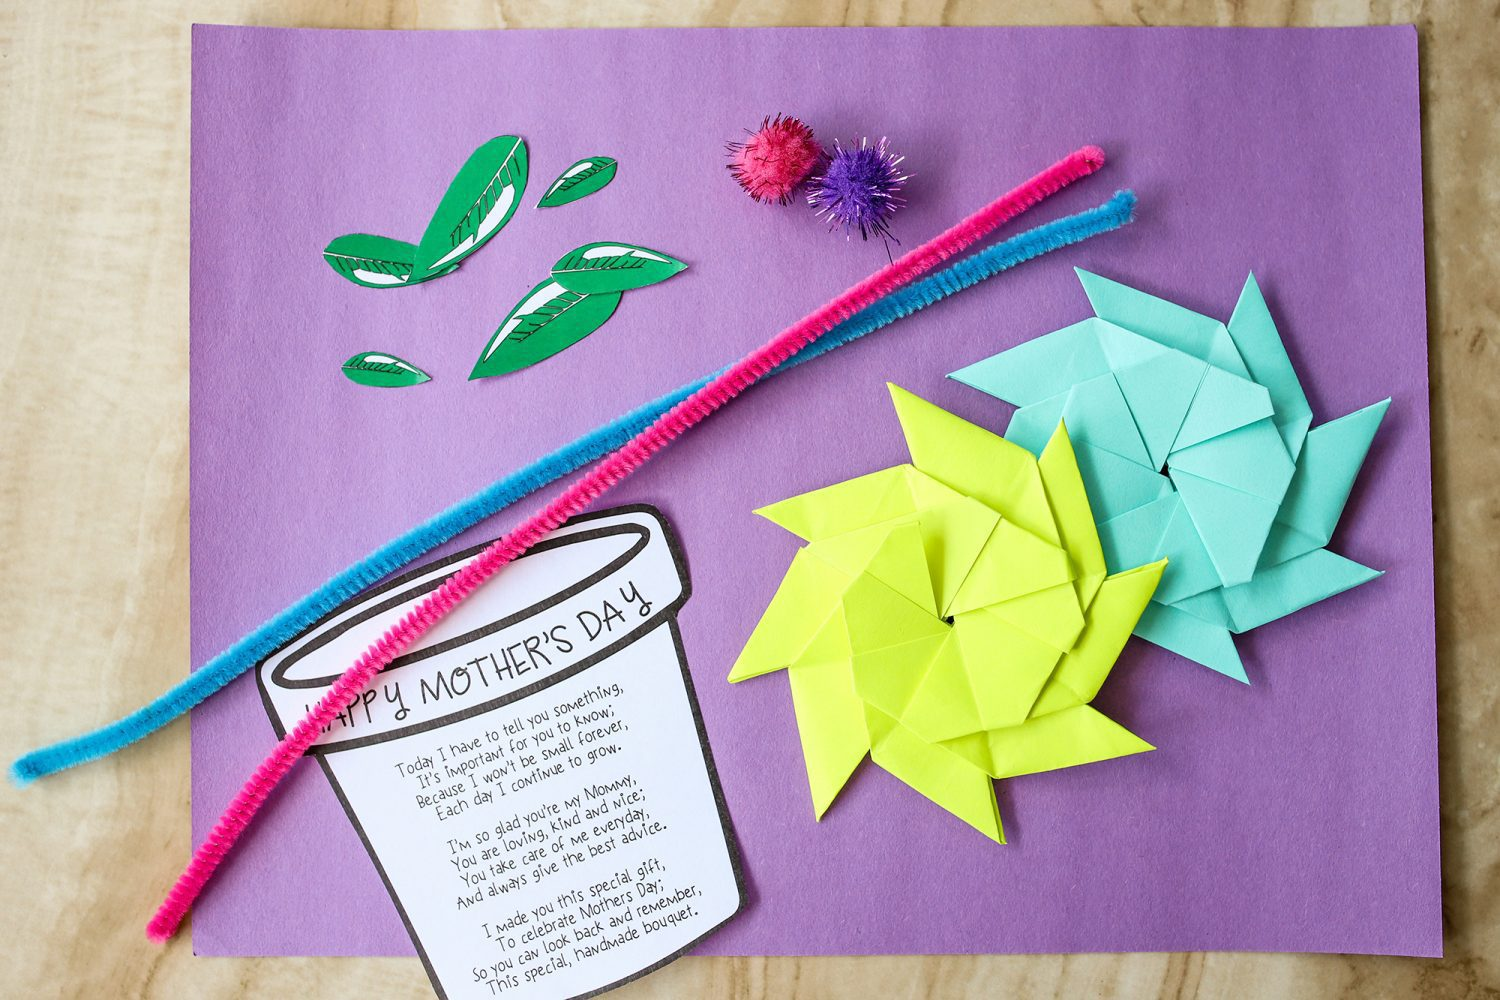 Supplies needed to make a mother's day flower pot